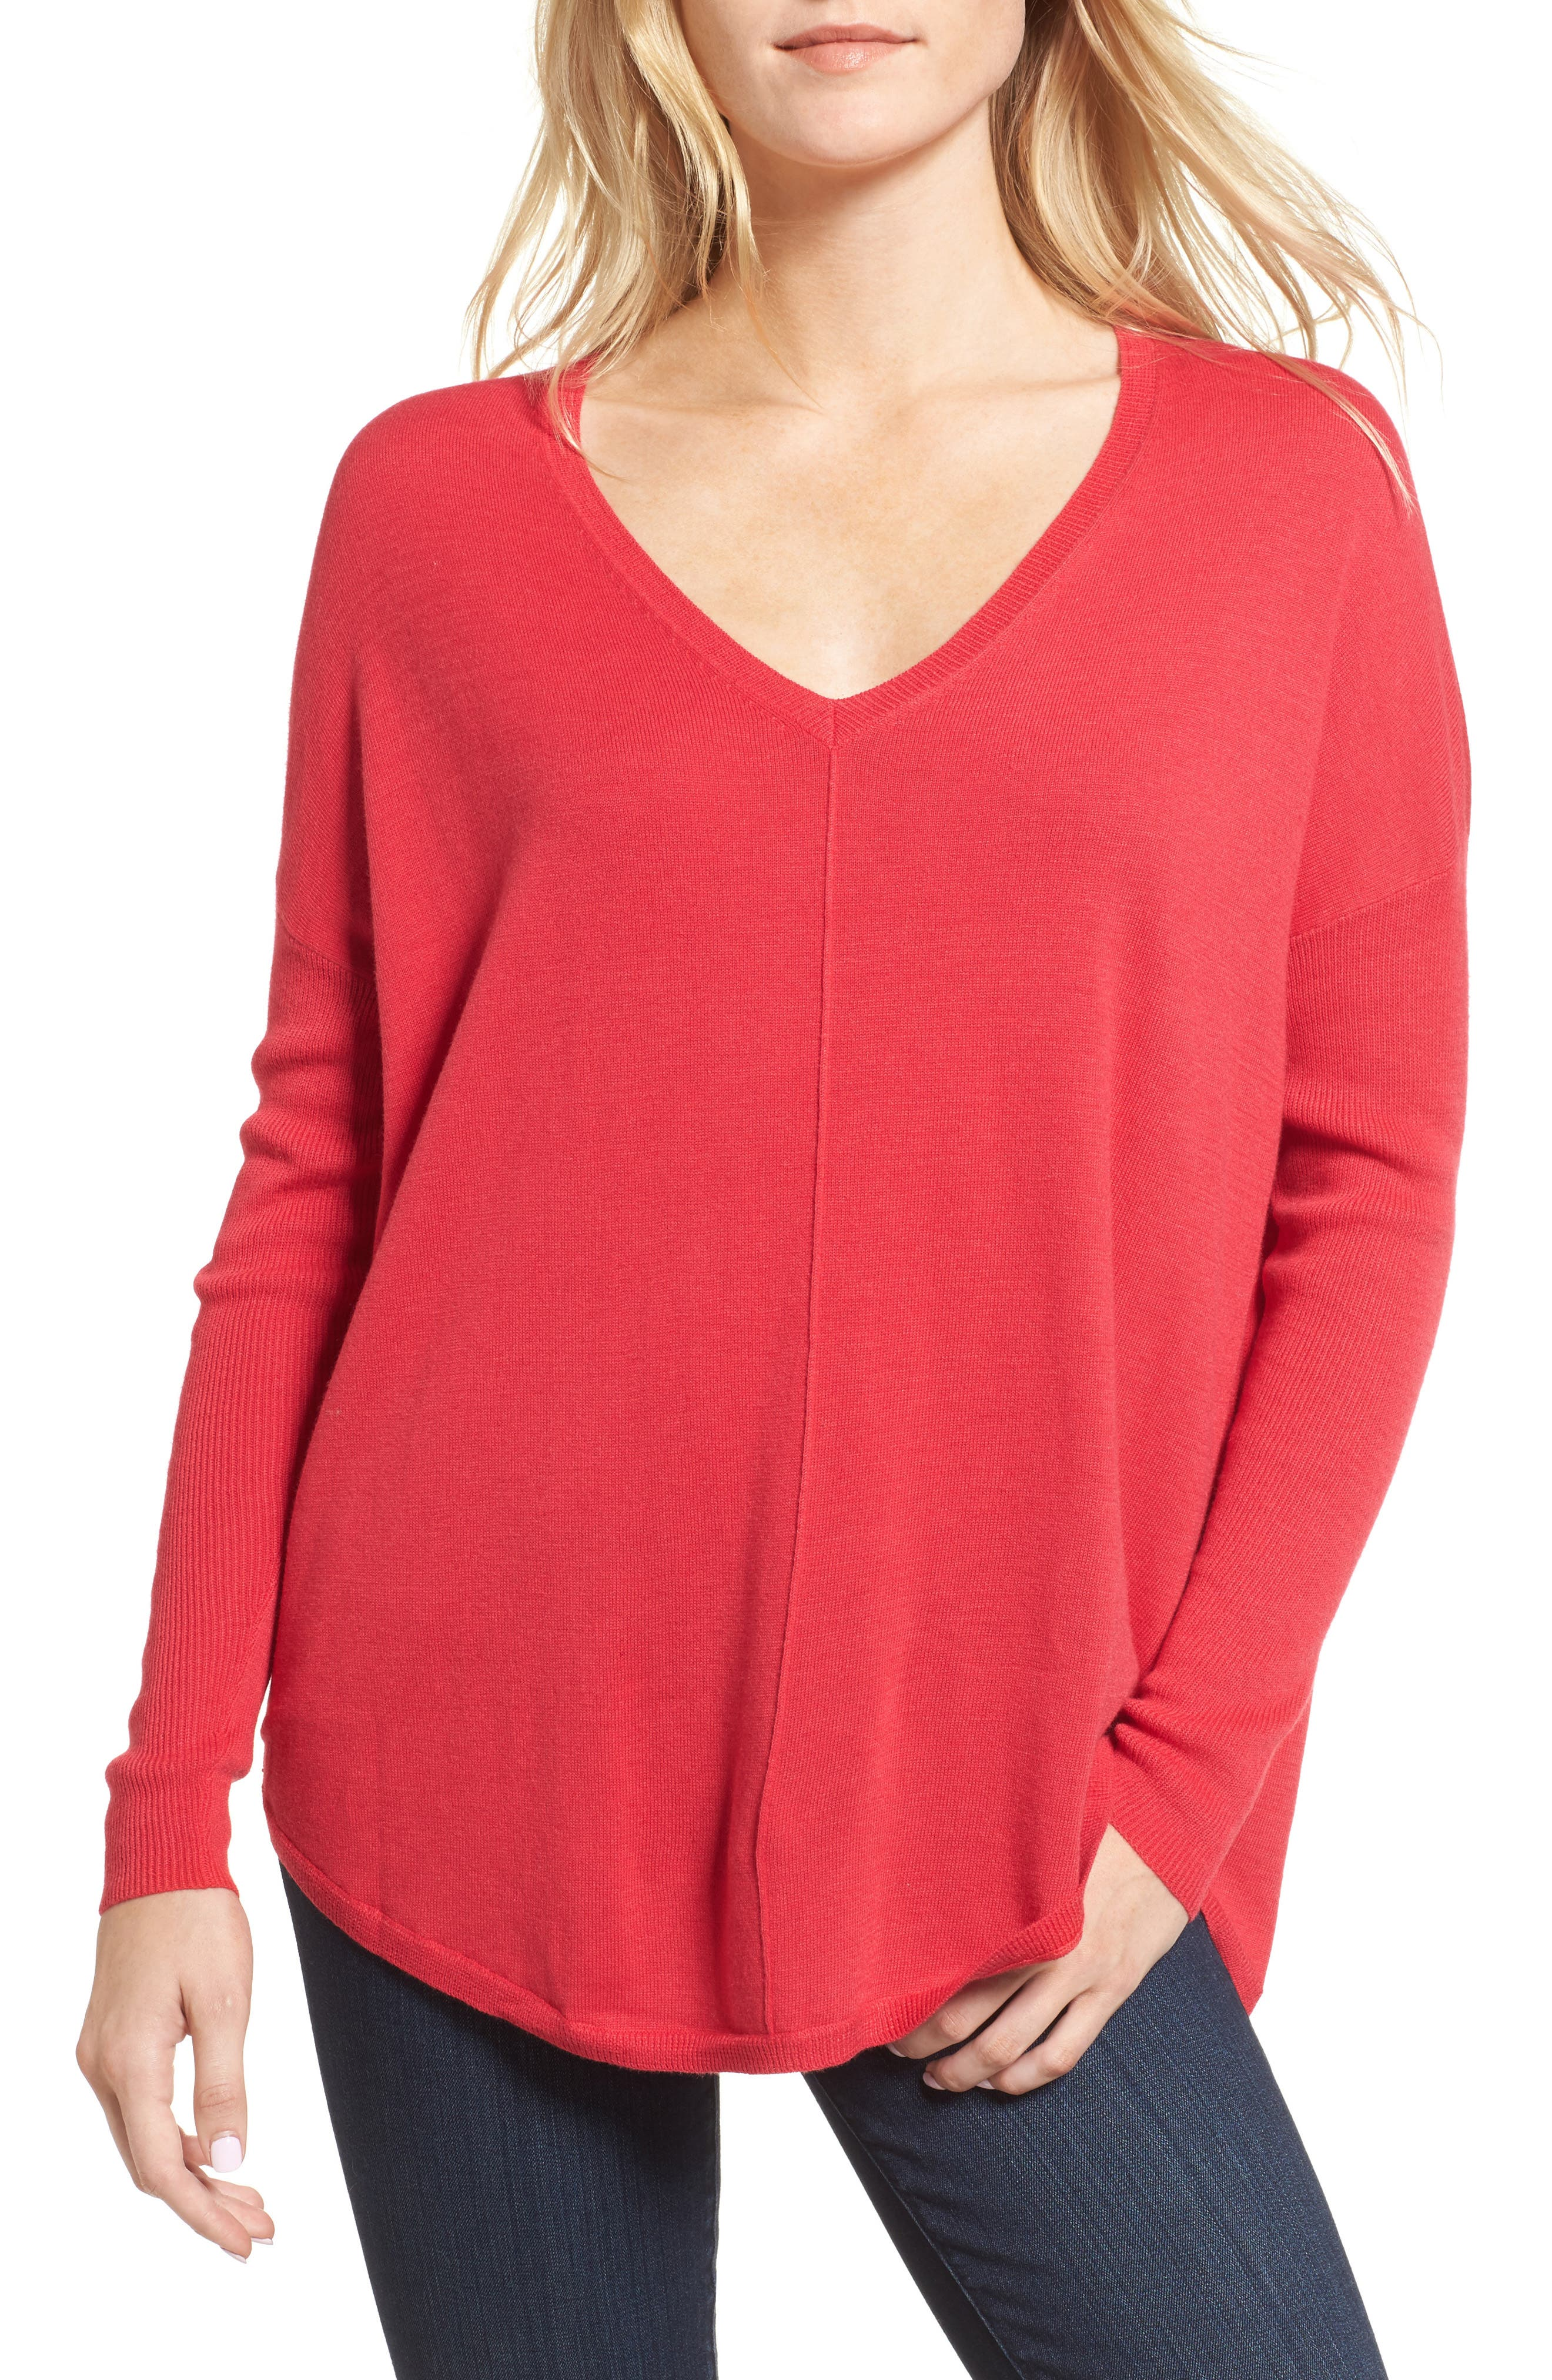 Women's Cashmere Blend Sweaters   Nordstrom